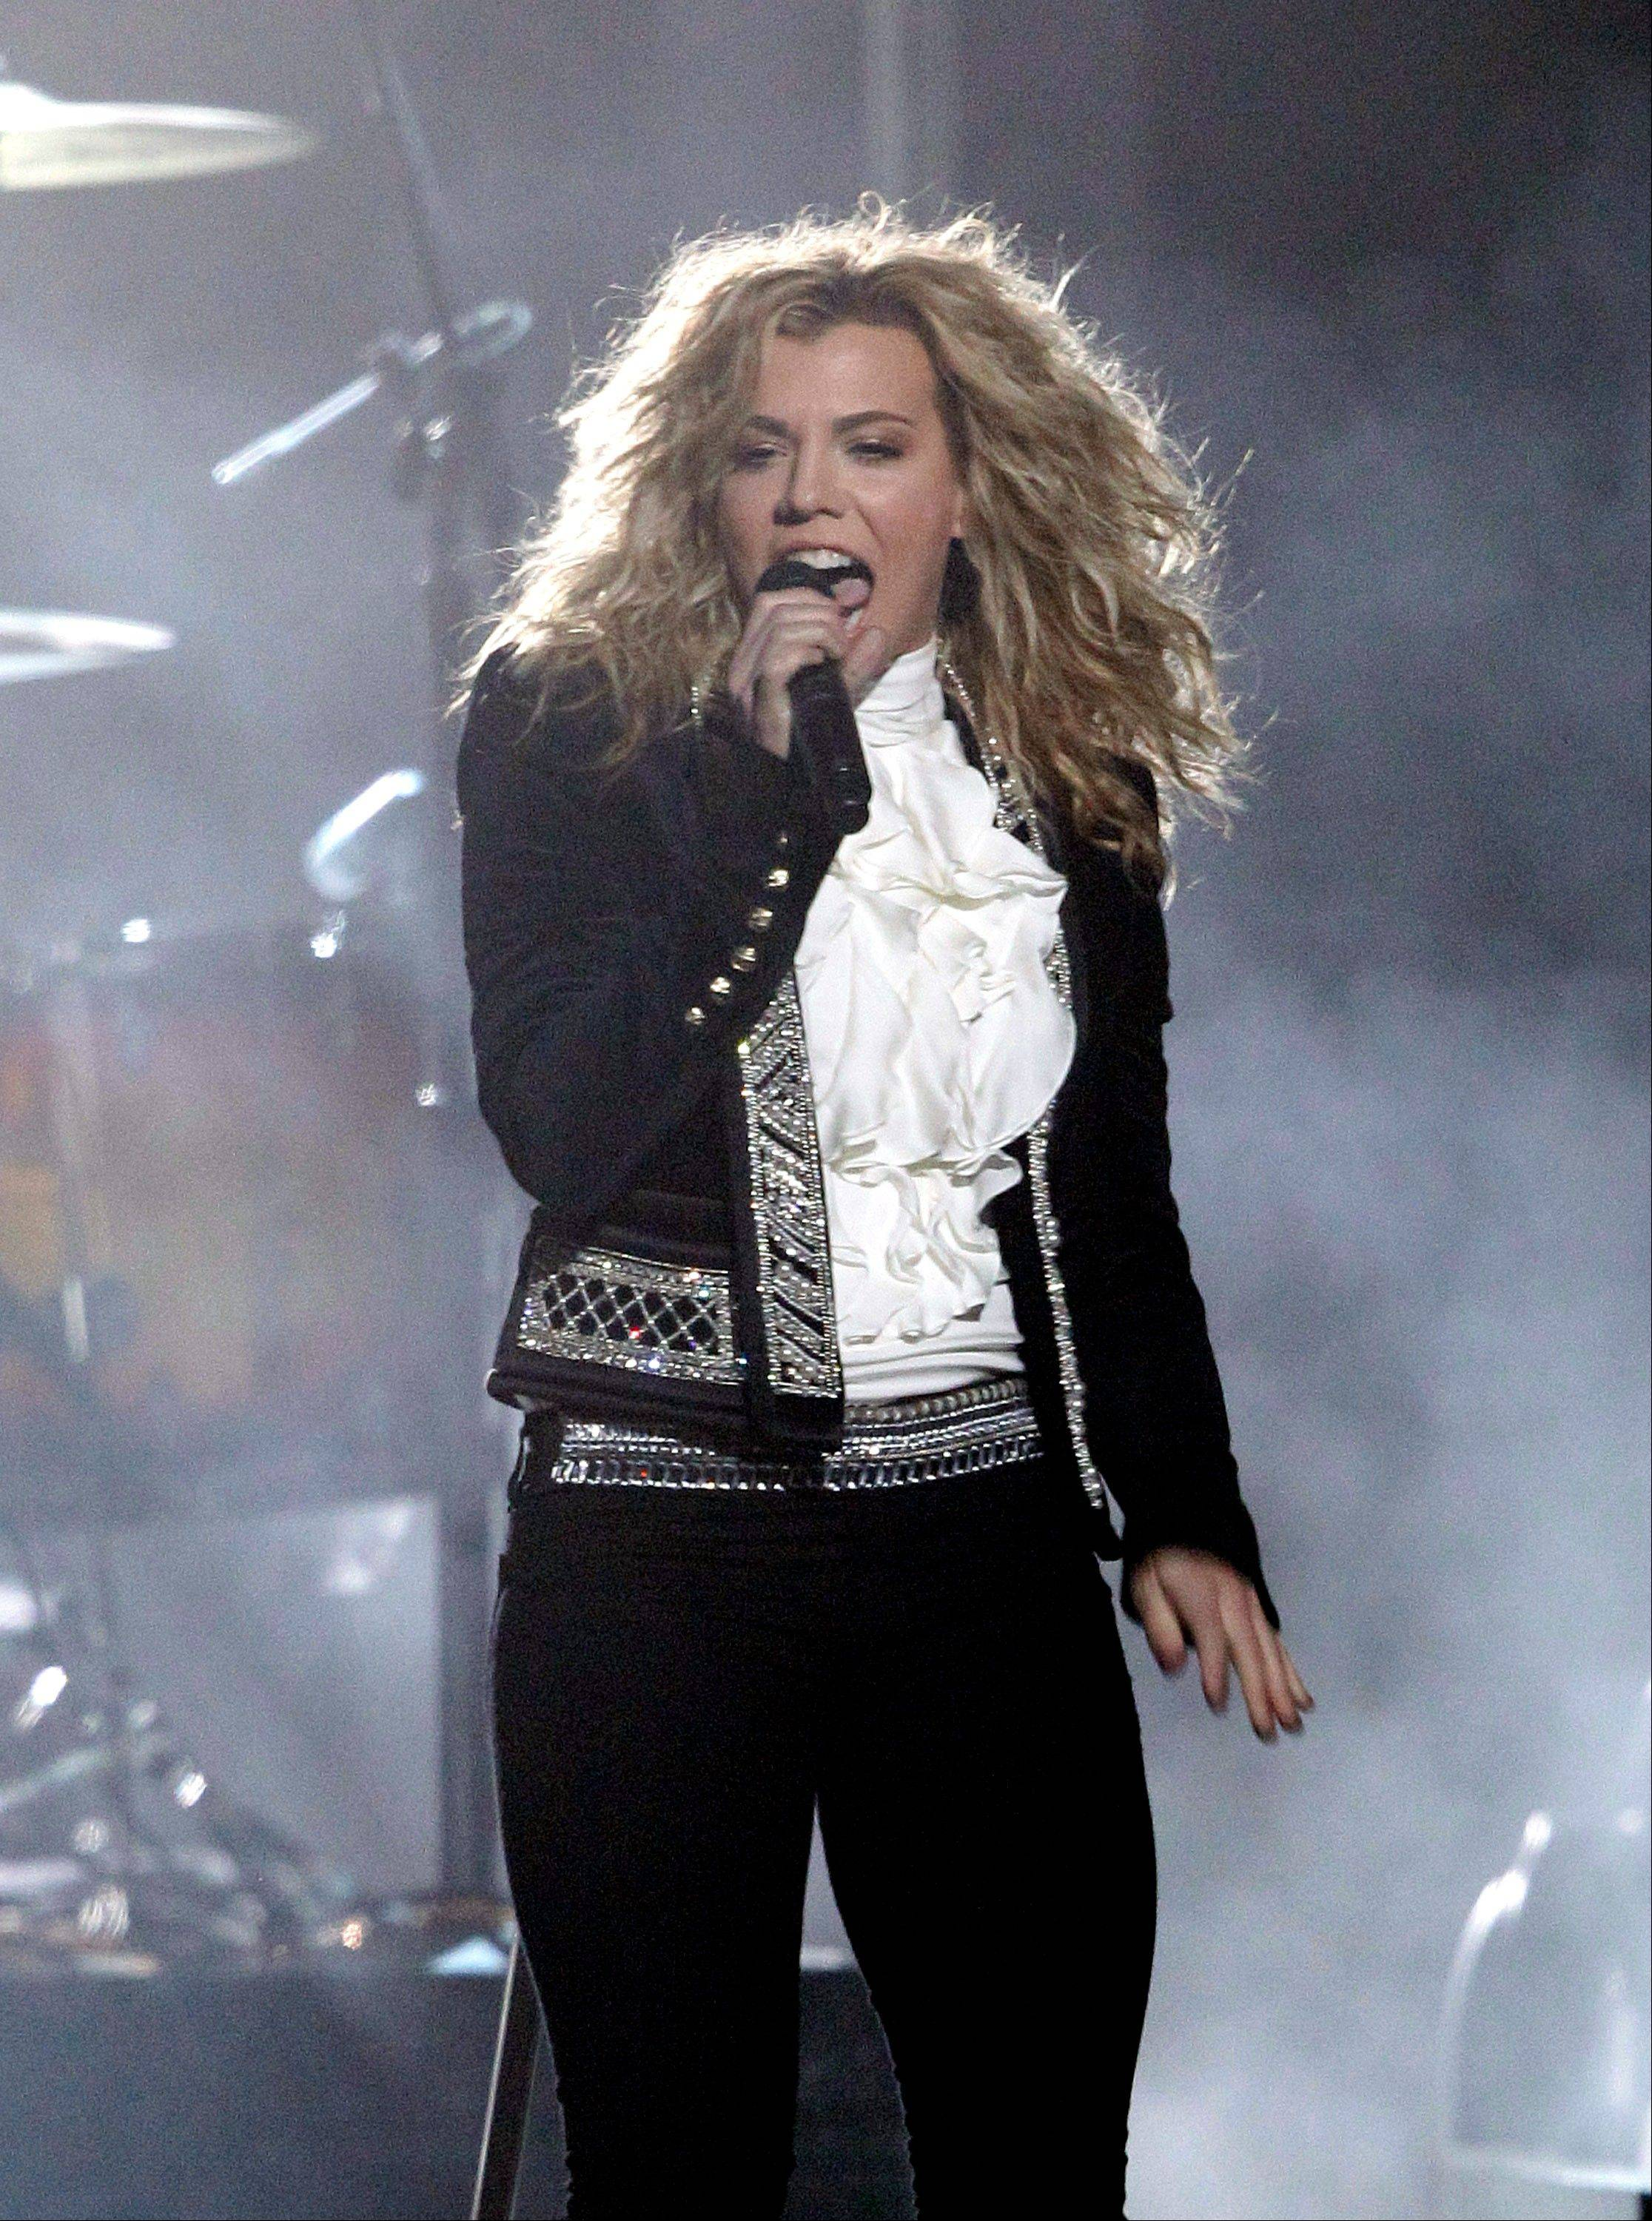 Kimberly Perry, of musical group The Band Perry, performs onstage at the 46th Annual Country Music Awards at the Bridgestone Arena on Thursday, Nov. 1, 2012, in Nashville, Tenn.